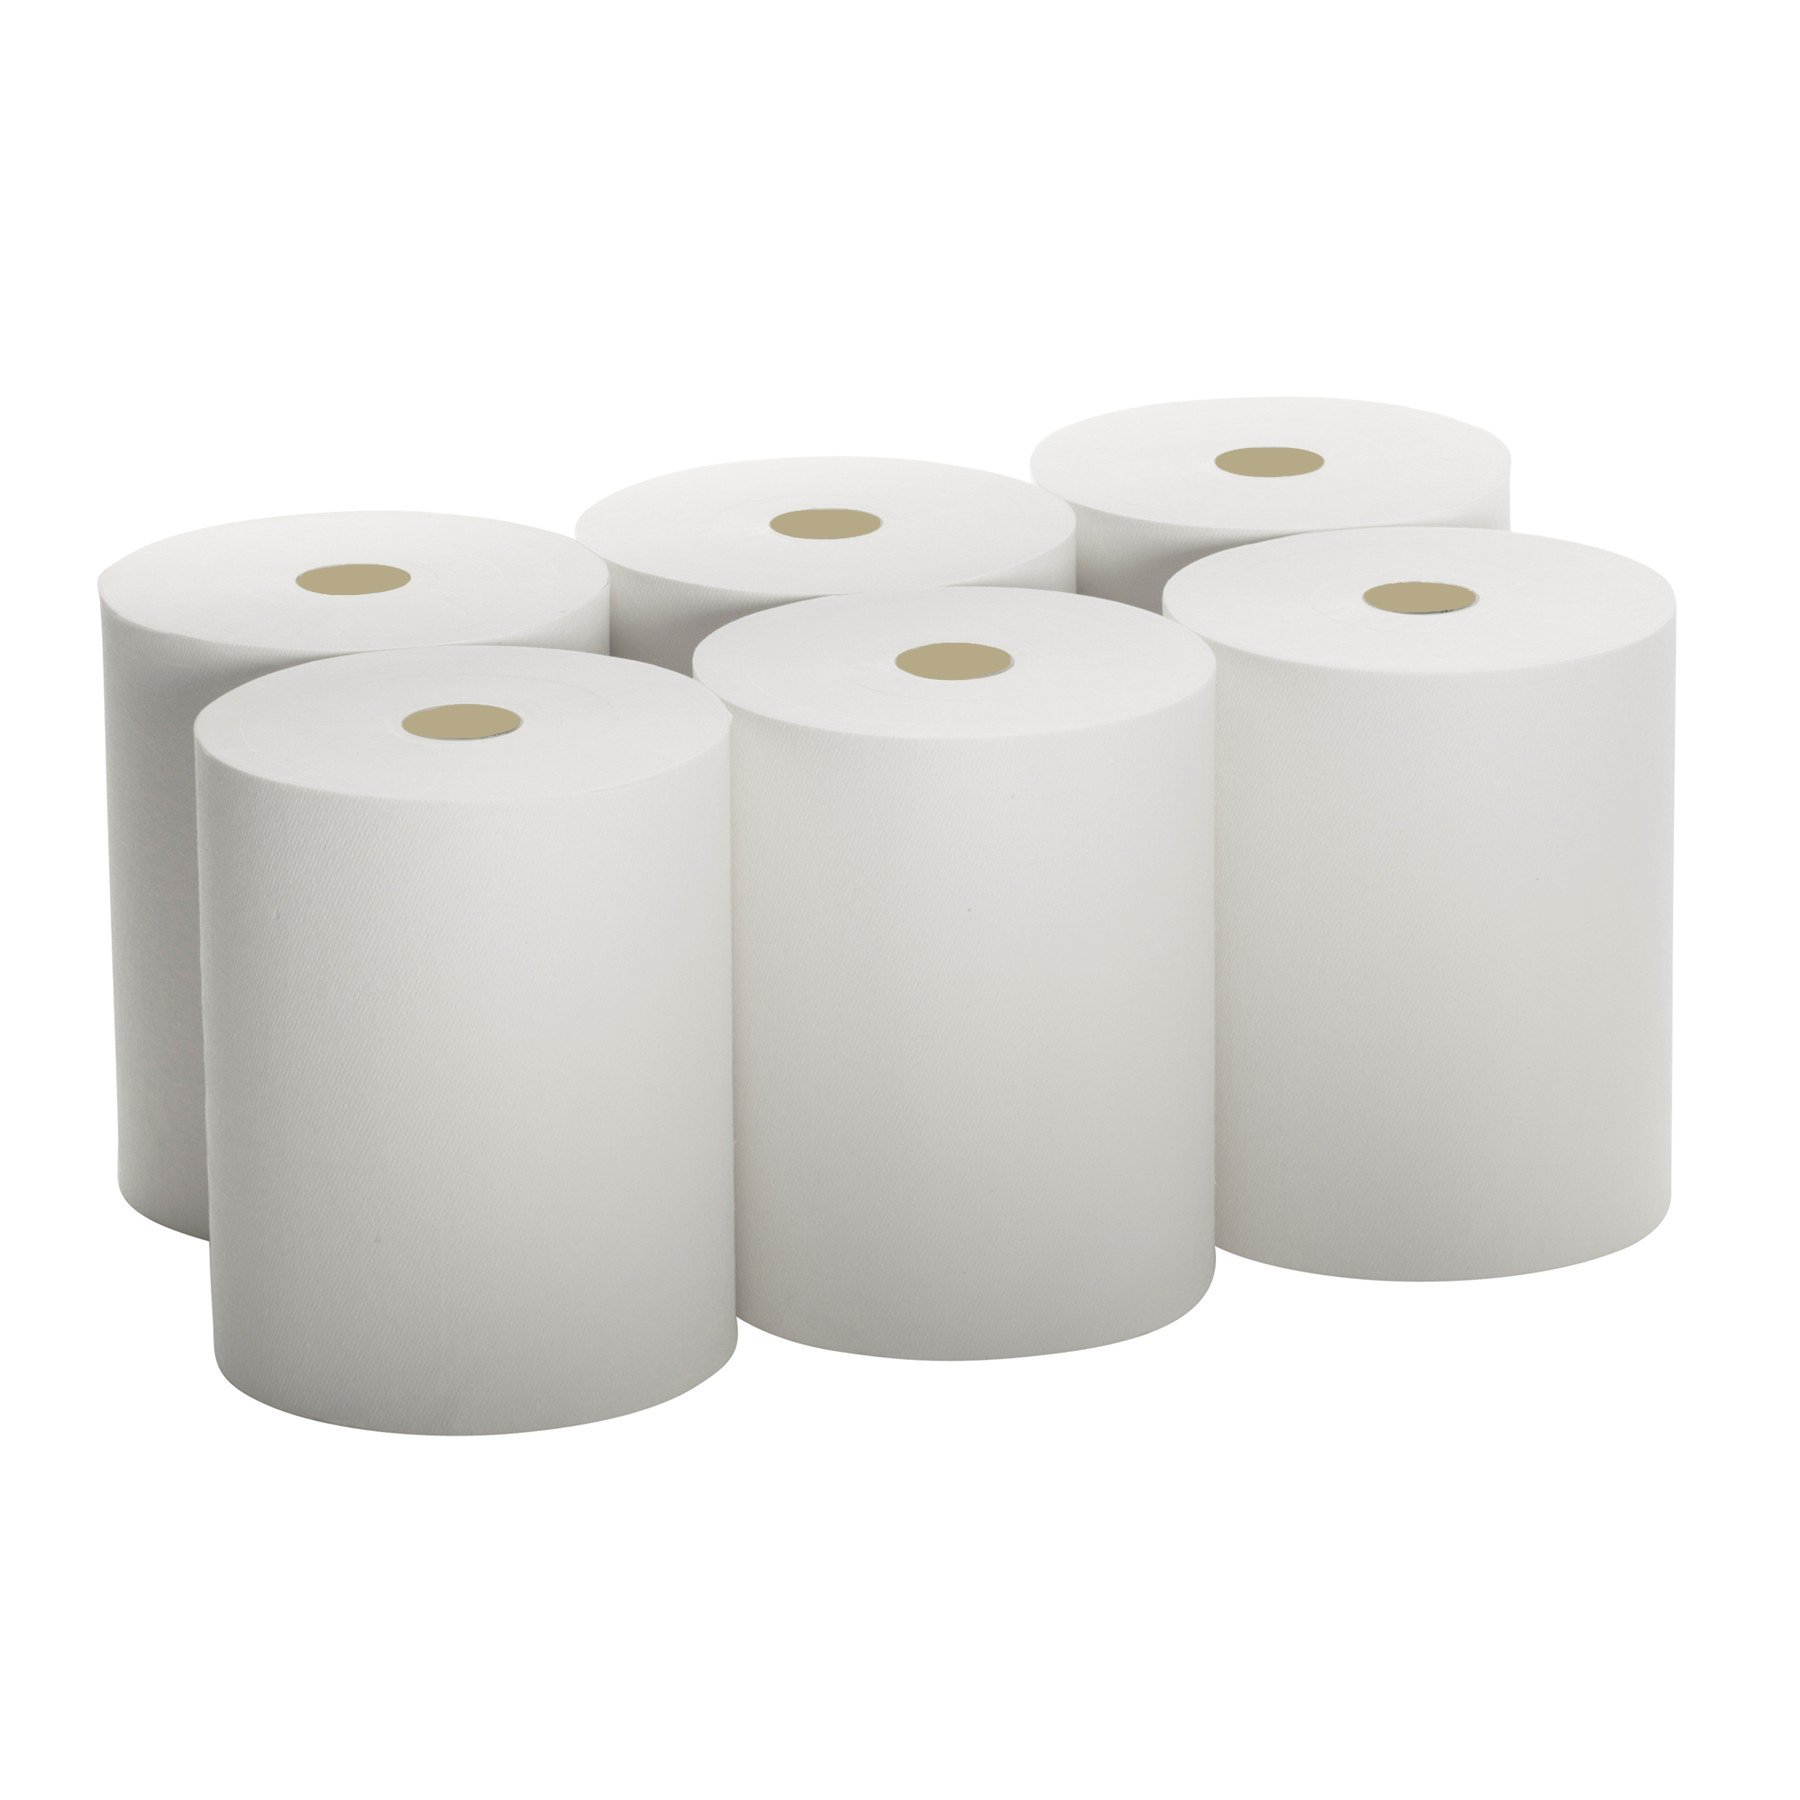 High Capacity White Paper Towels 10''x800' (Packed 6 Rolls) Premium Quality Fits Touchless Automatic Roll Towel Dispenser by A World Of Deals